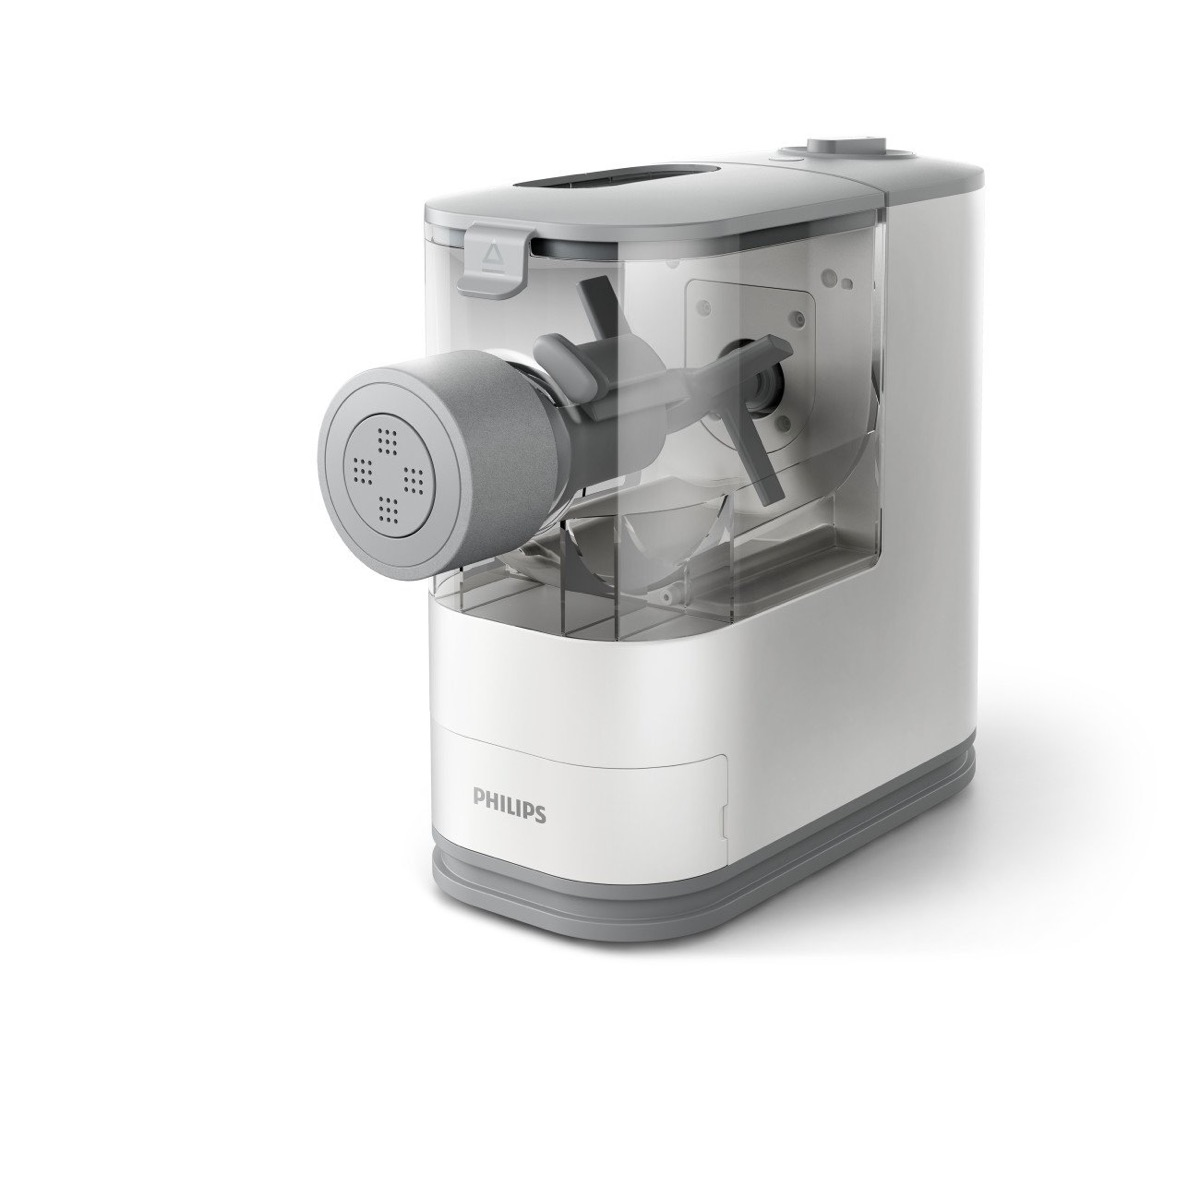 phillips compact pasta and noodle maker